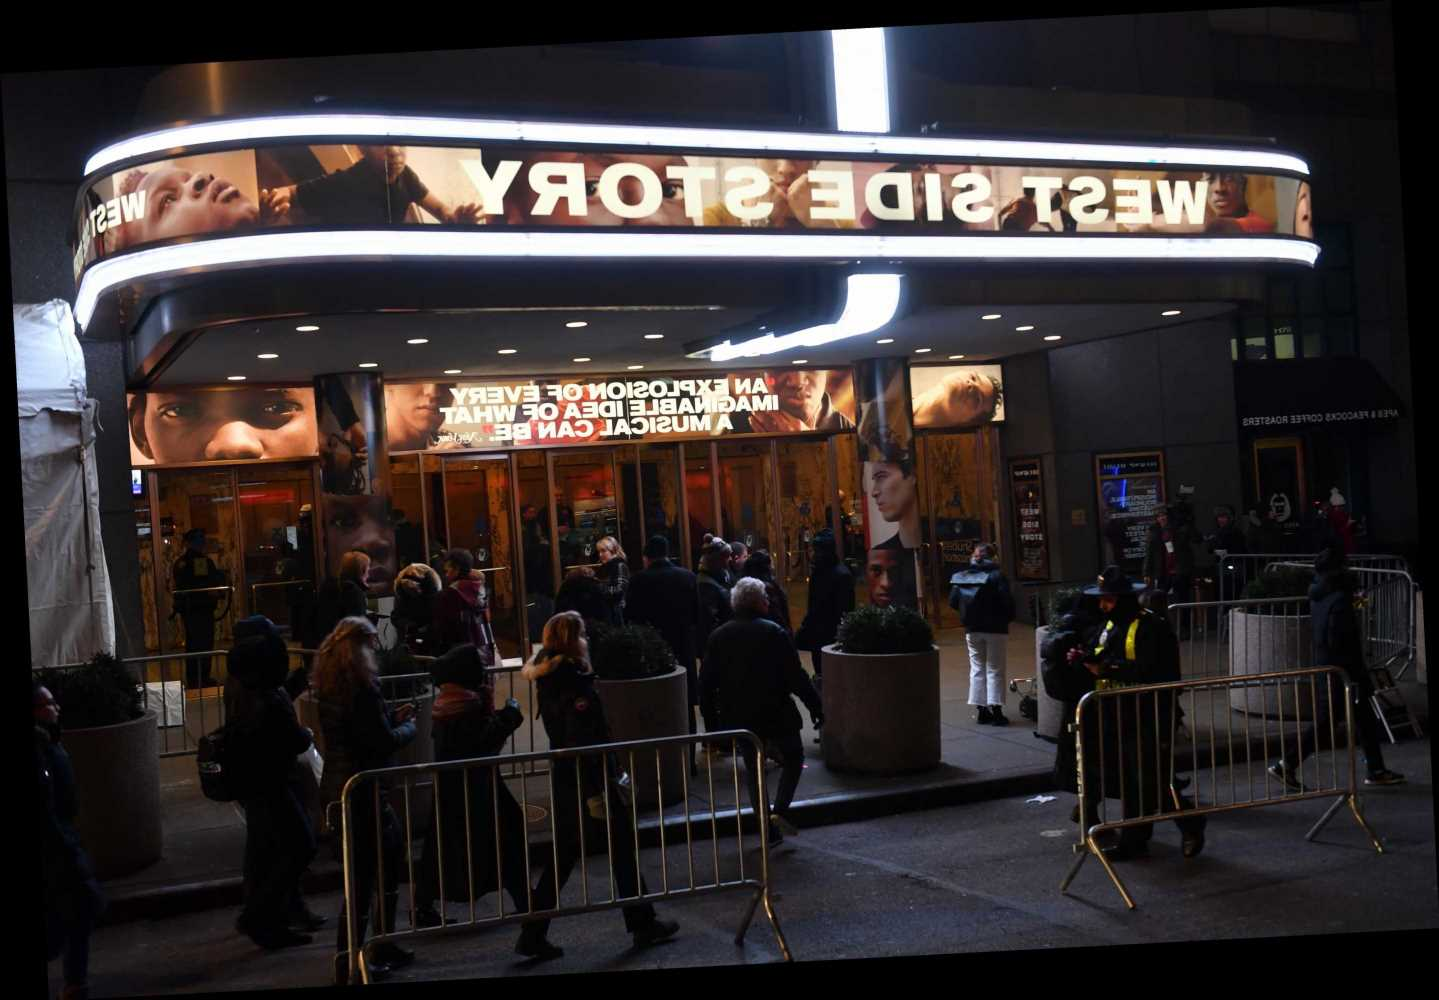 New York Governor Shuts Down All Broadway Shows as Other Institutions Close Over COVID-19 Fears